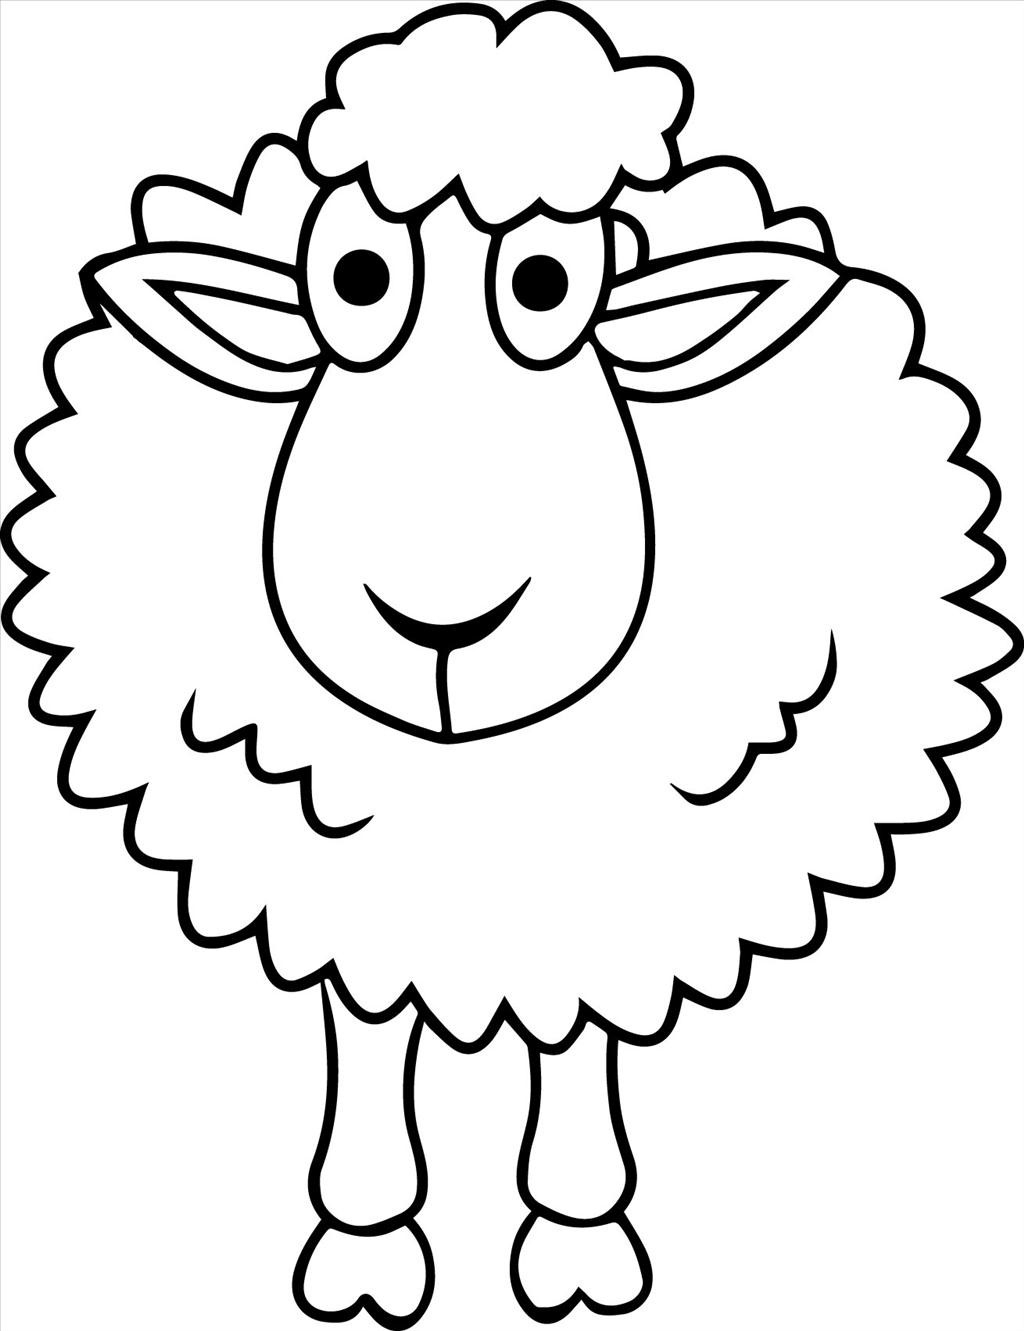 coloring book sheep free printable sheep face coloring pages for kids cool2bkids sheep coloring book